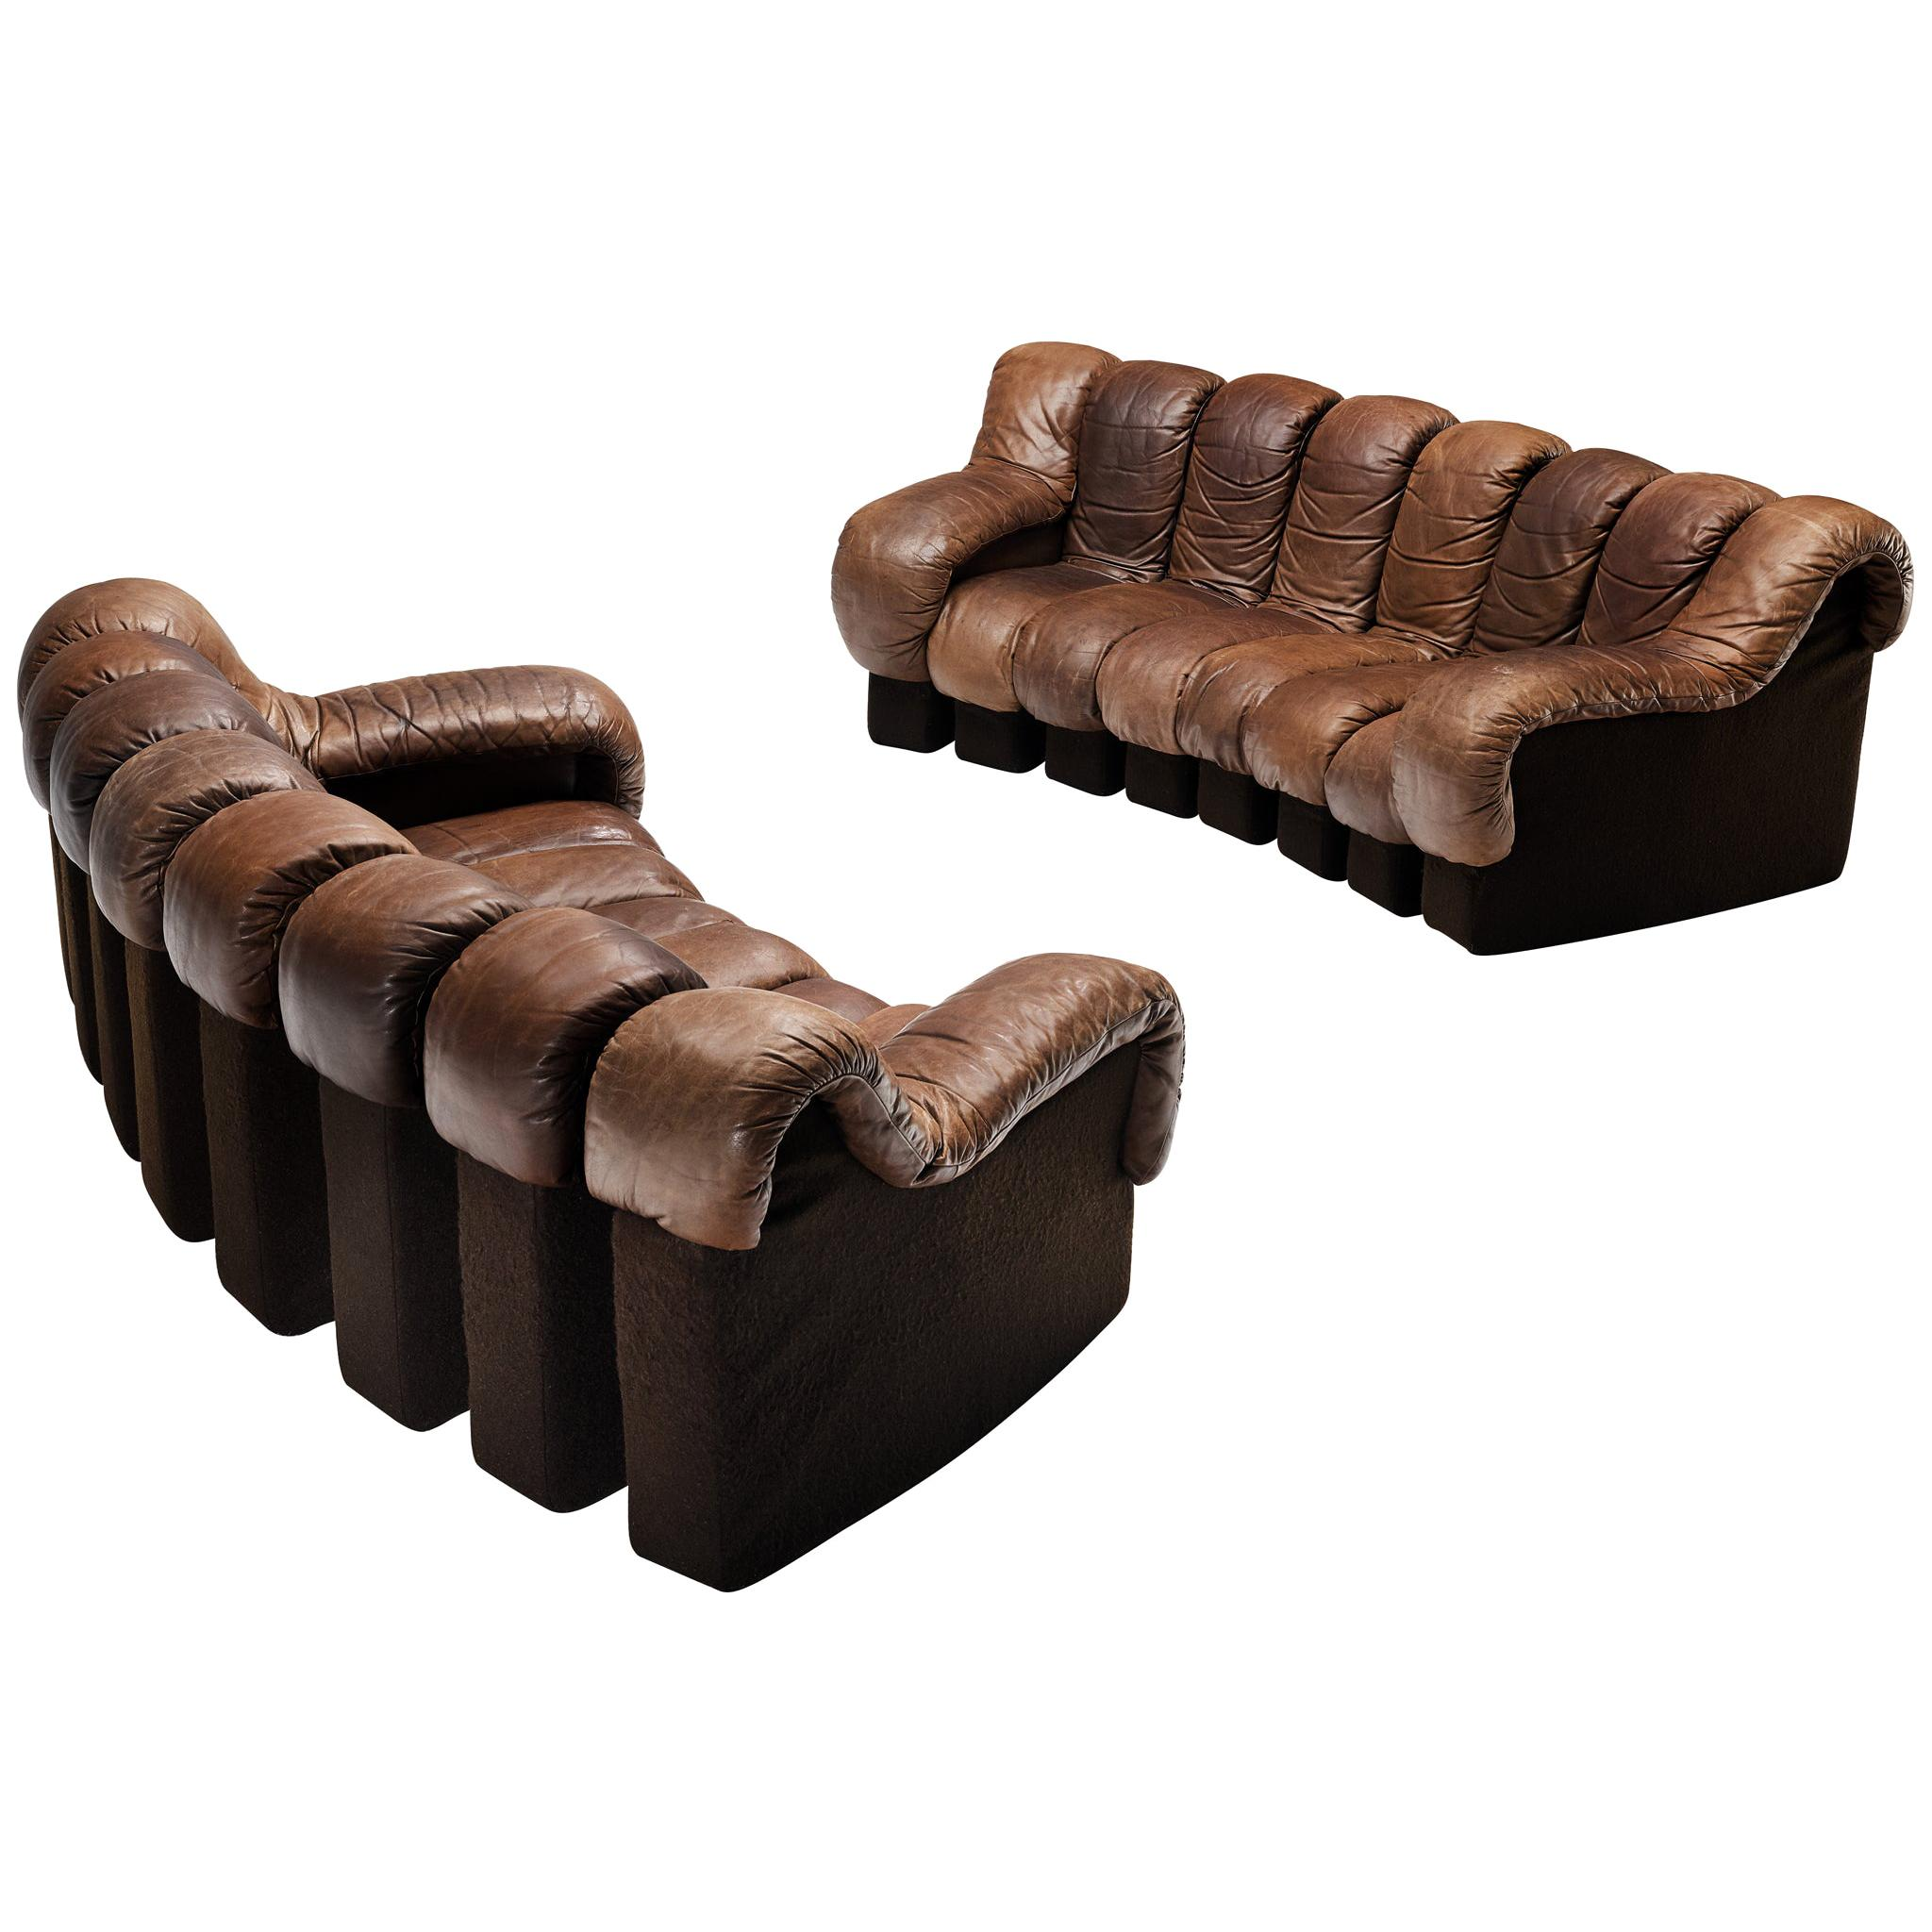 Pair of De Sede DS-600 Sofas in Brown Leather